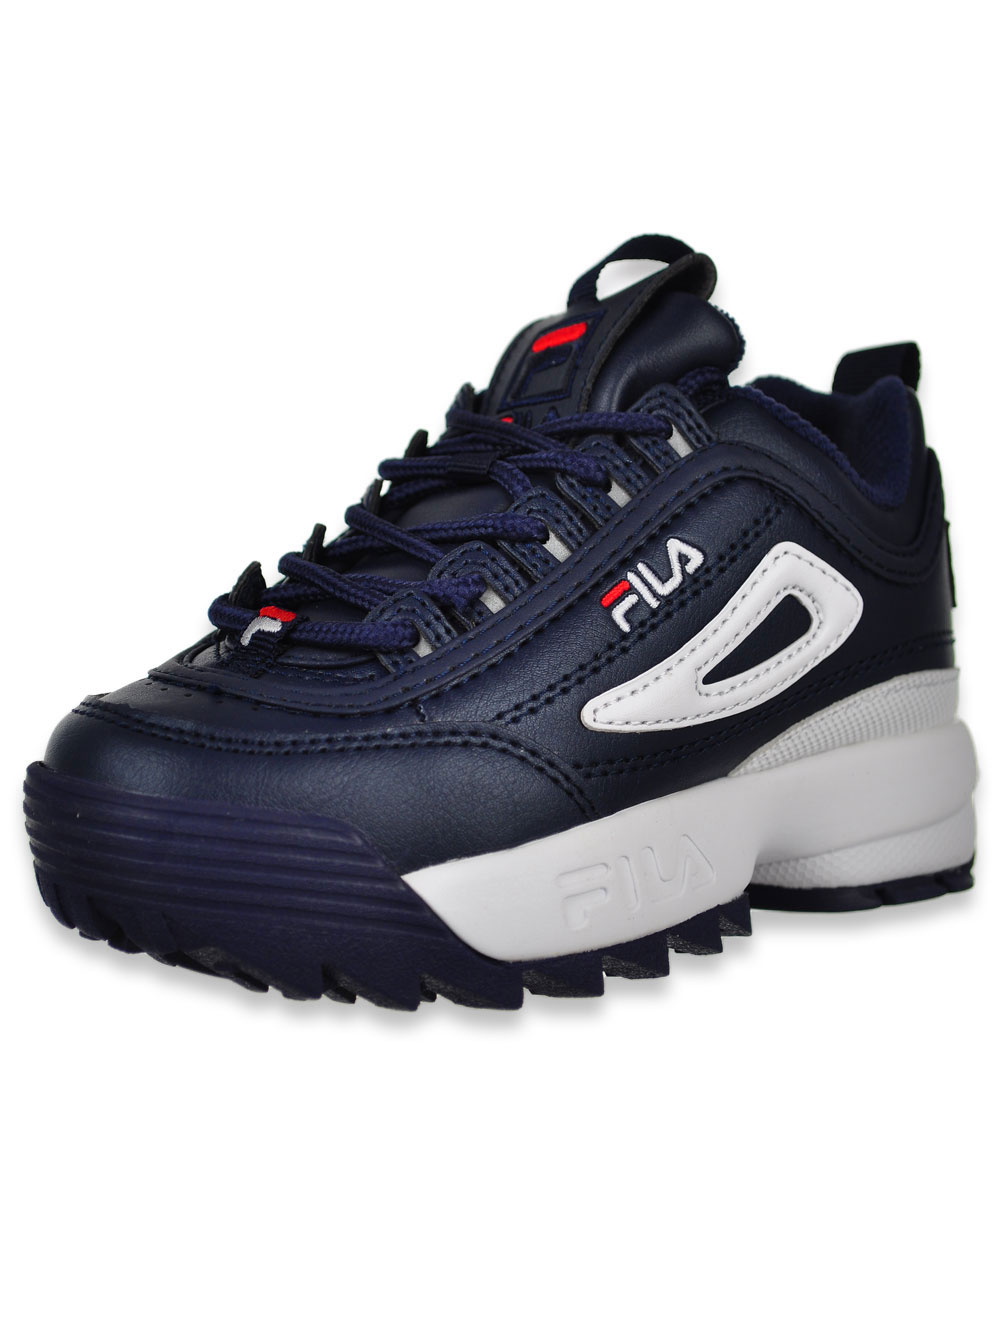 Fila Boys' Disruptor II Sneakers (Sizes 11.5 – 3)